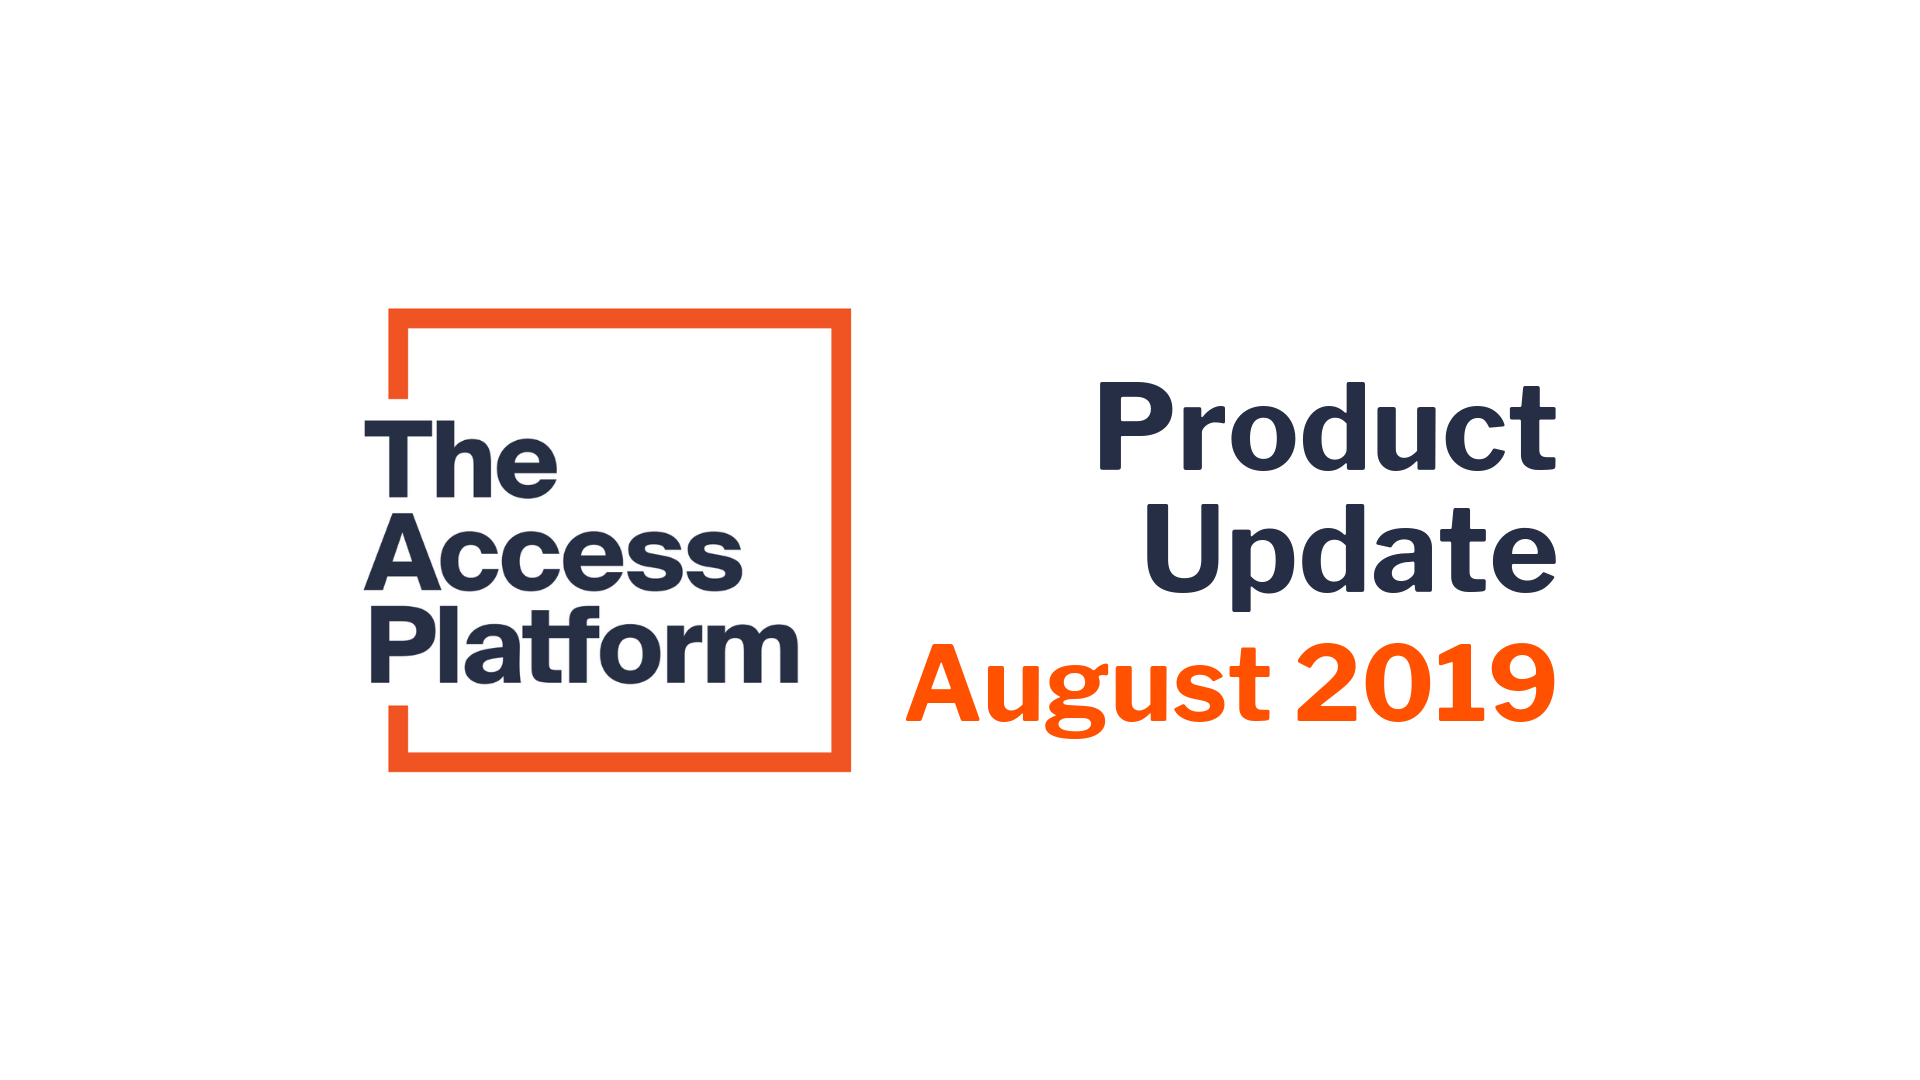 What's new? August 2019